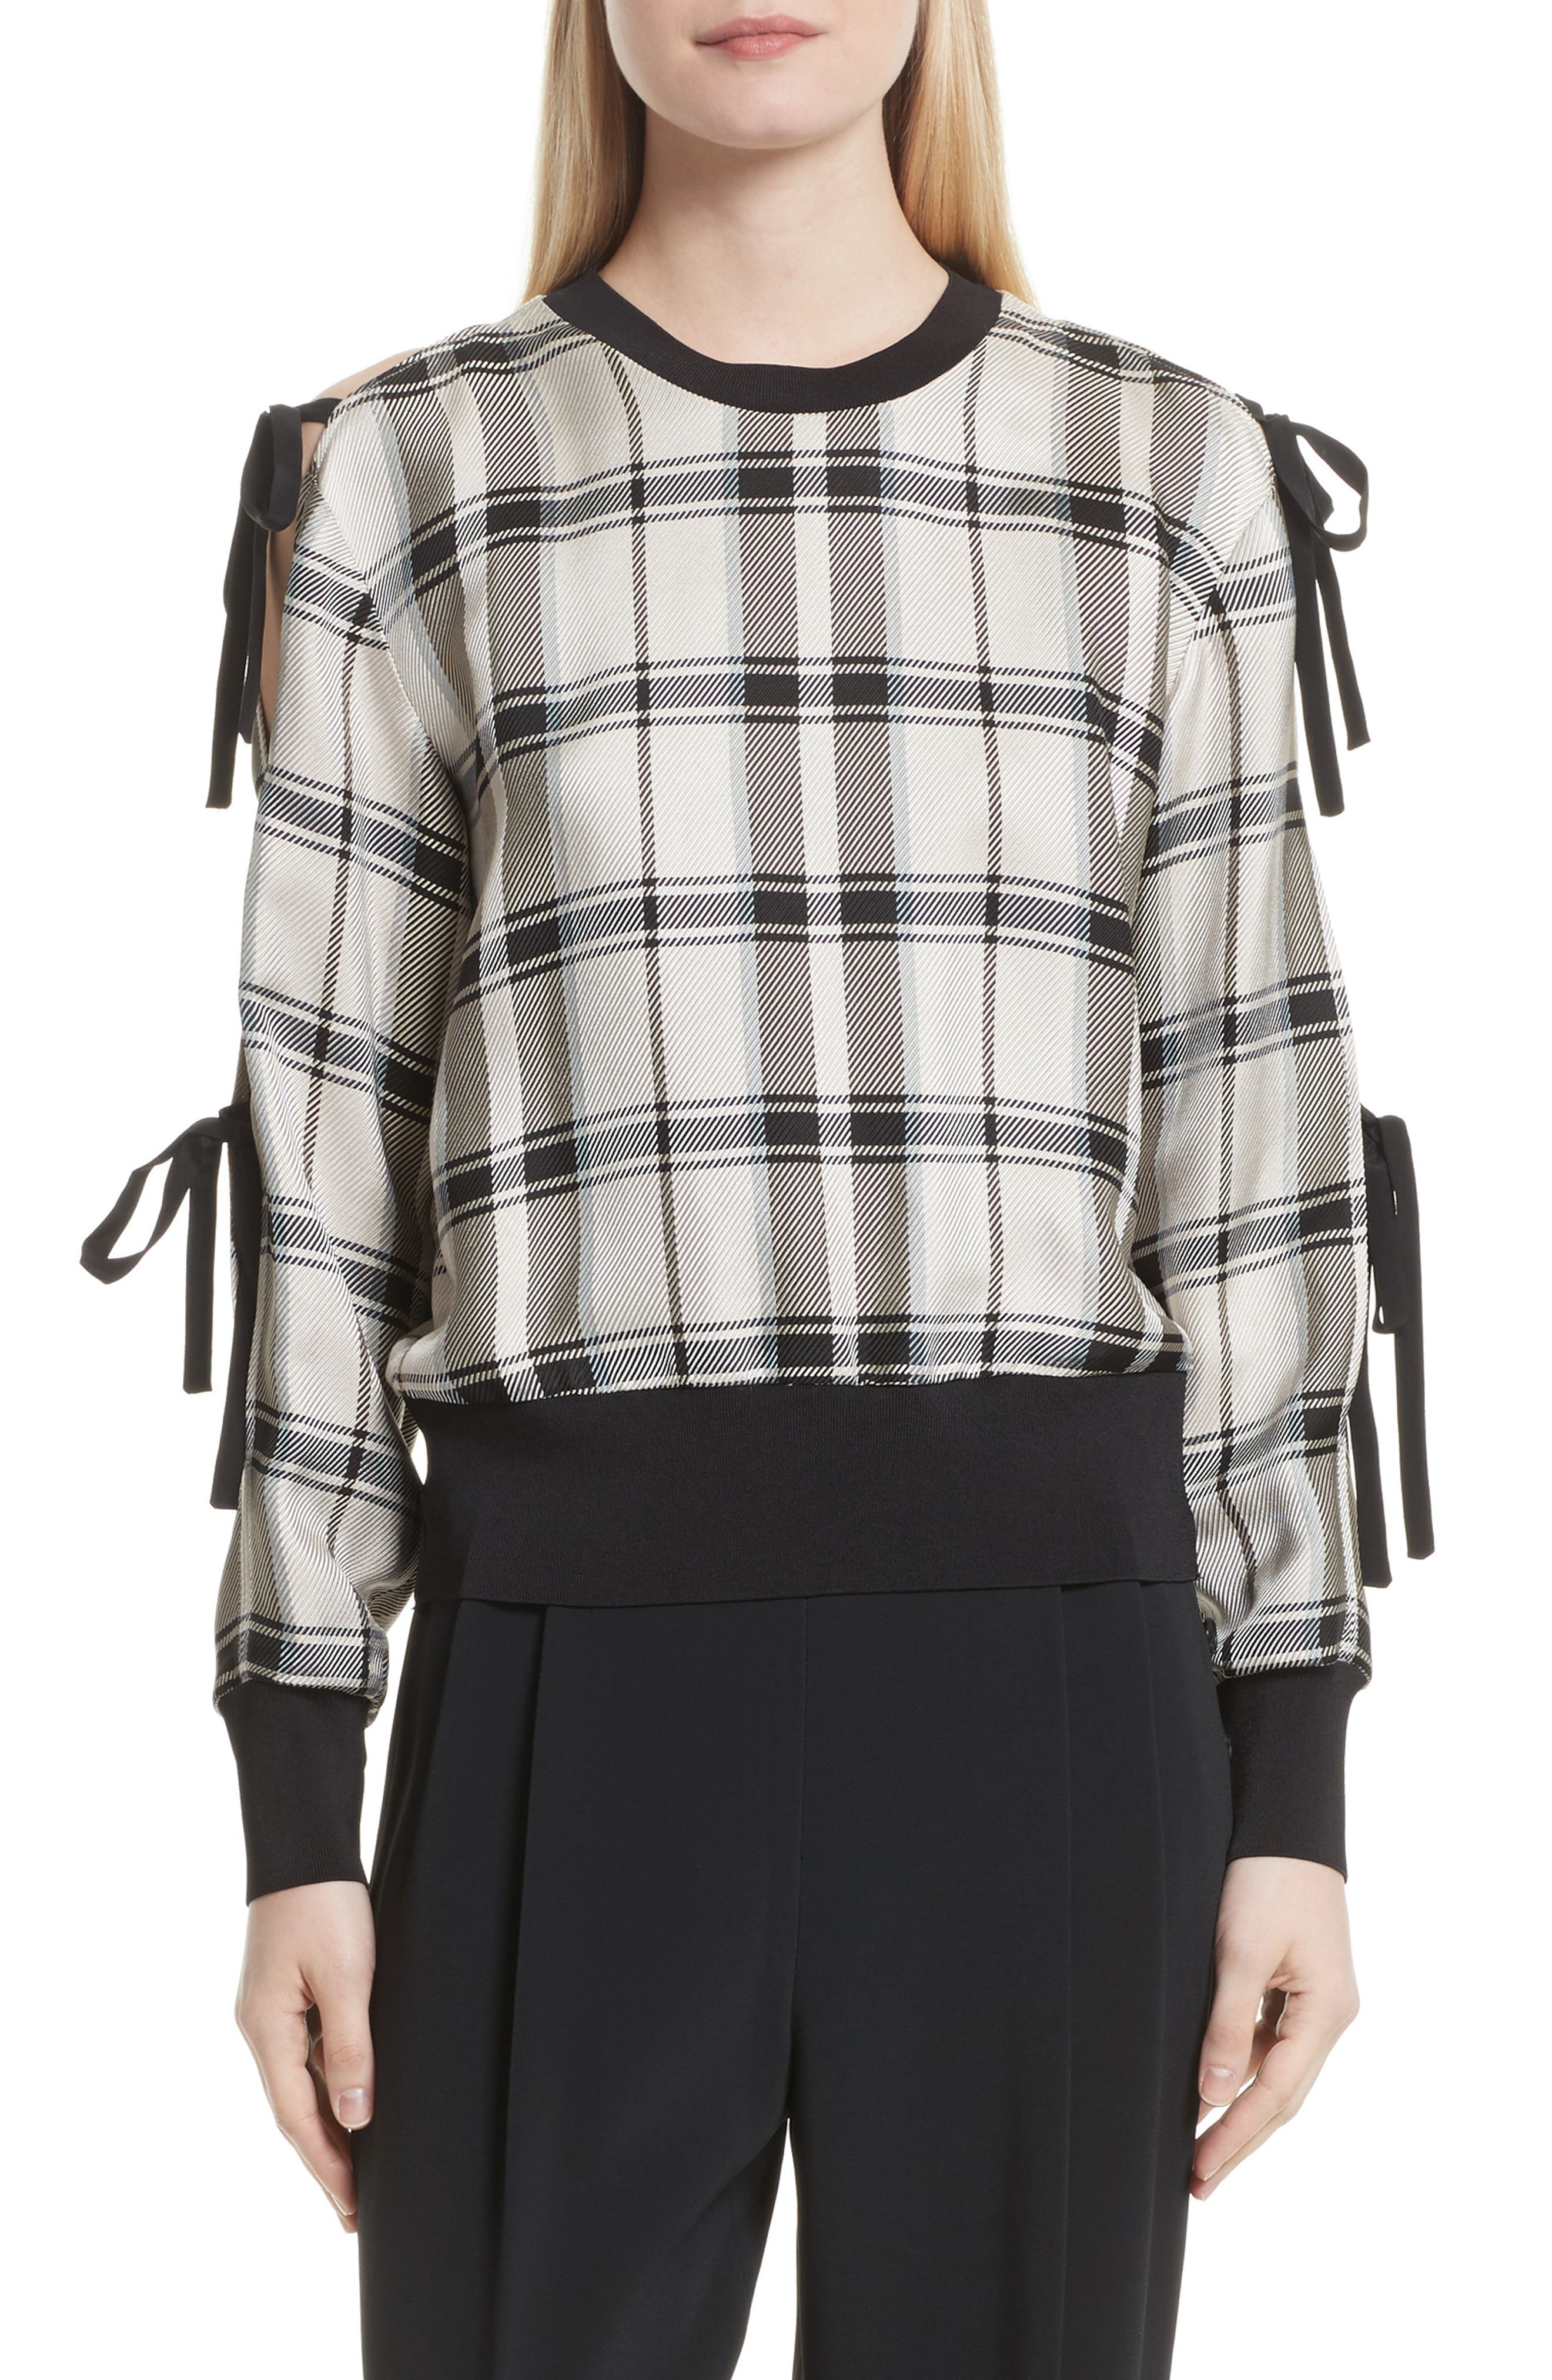 Main Image - 3.1 Phillip Lim Tie Sleeve Check Pullover